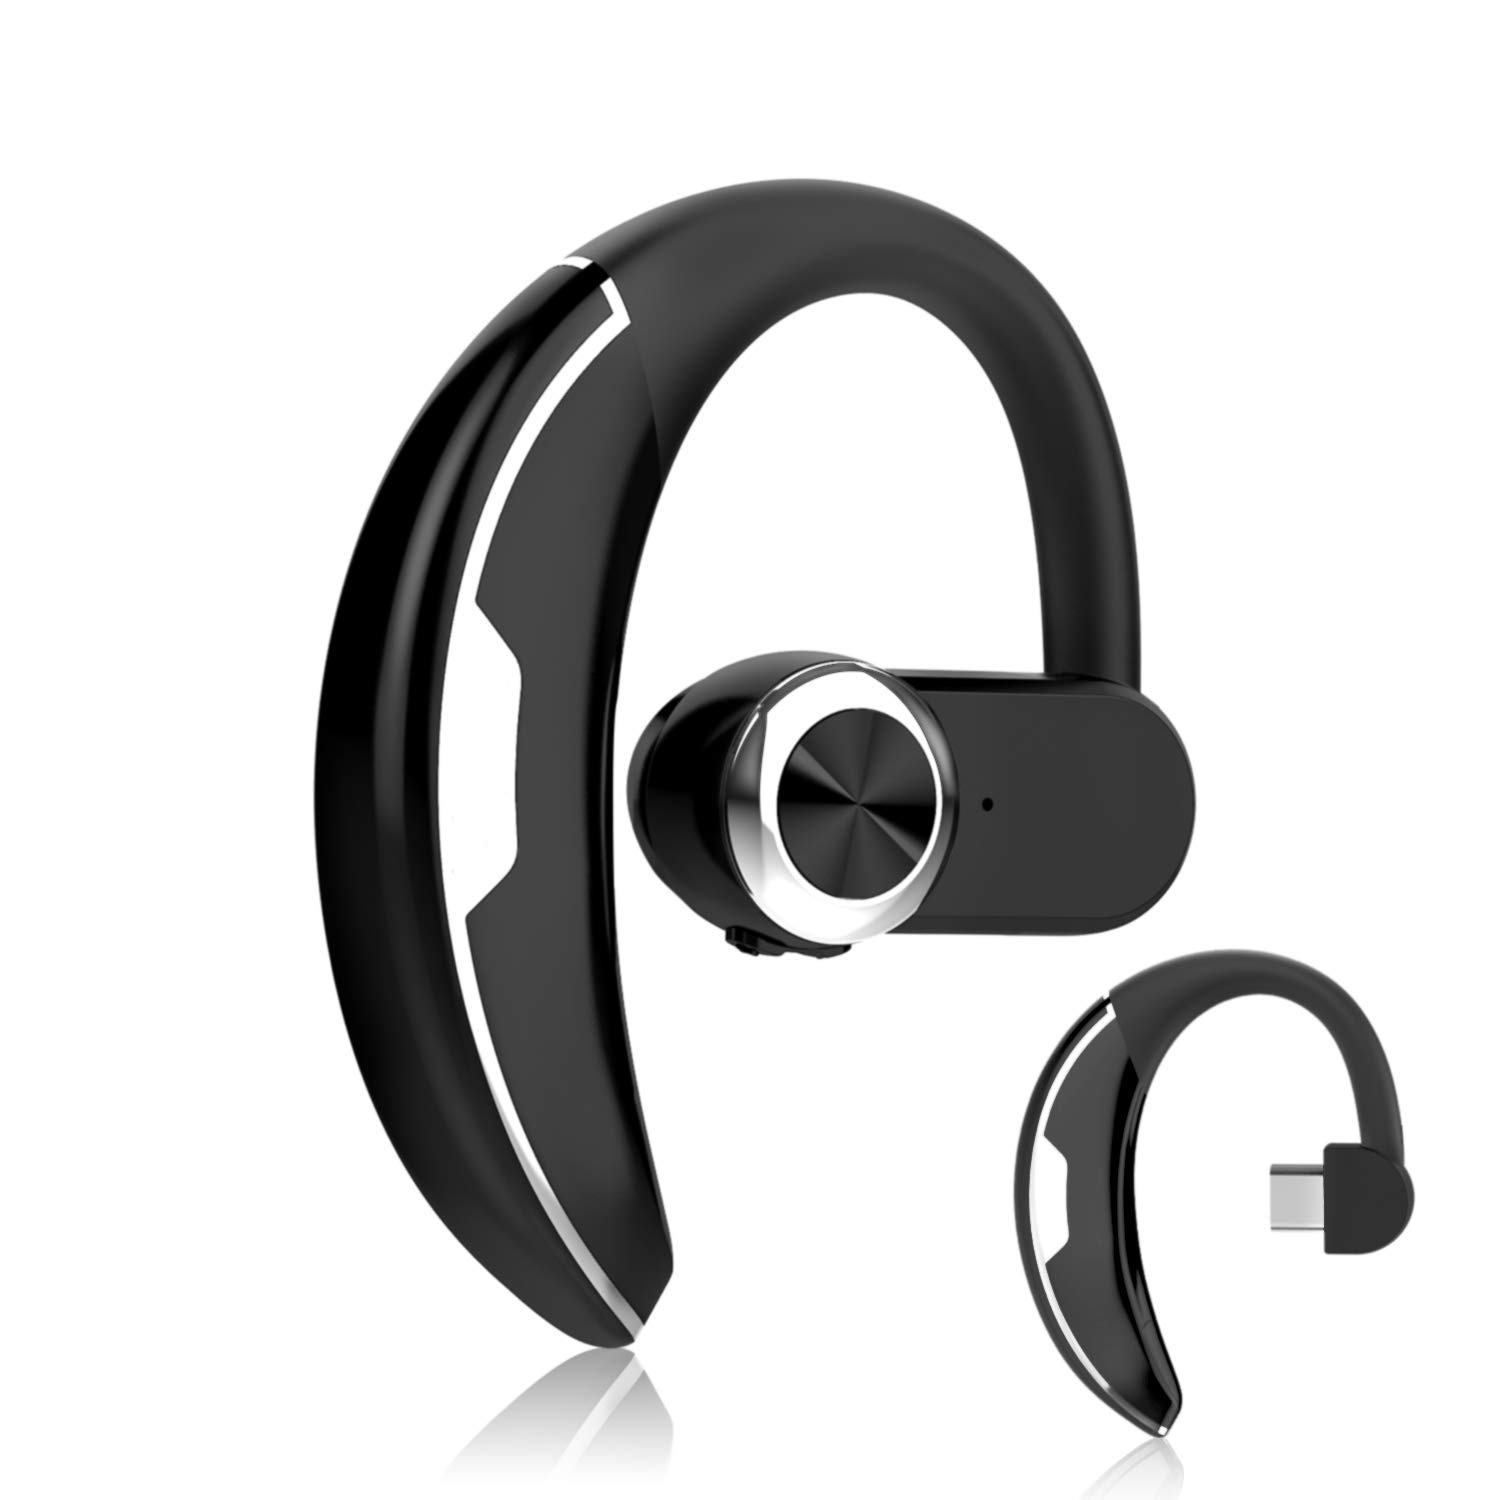 KINGWorld Bluetooth Headset with 36-Hr Playing Time V4.1 Car Driving Bluetooth Earpiece Wireless Hands Free Headphones with Mic Cell Phone Noise Cancelling In-Ear Compatible with iPhone (Silver) by KINGWorld